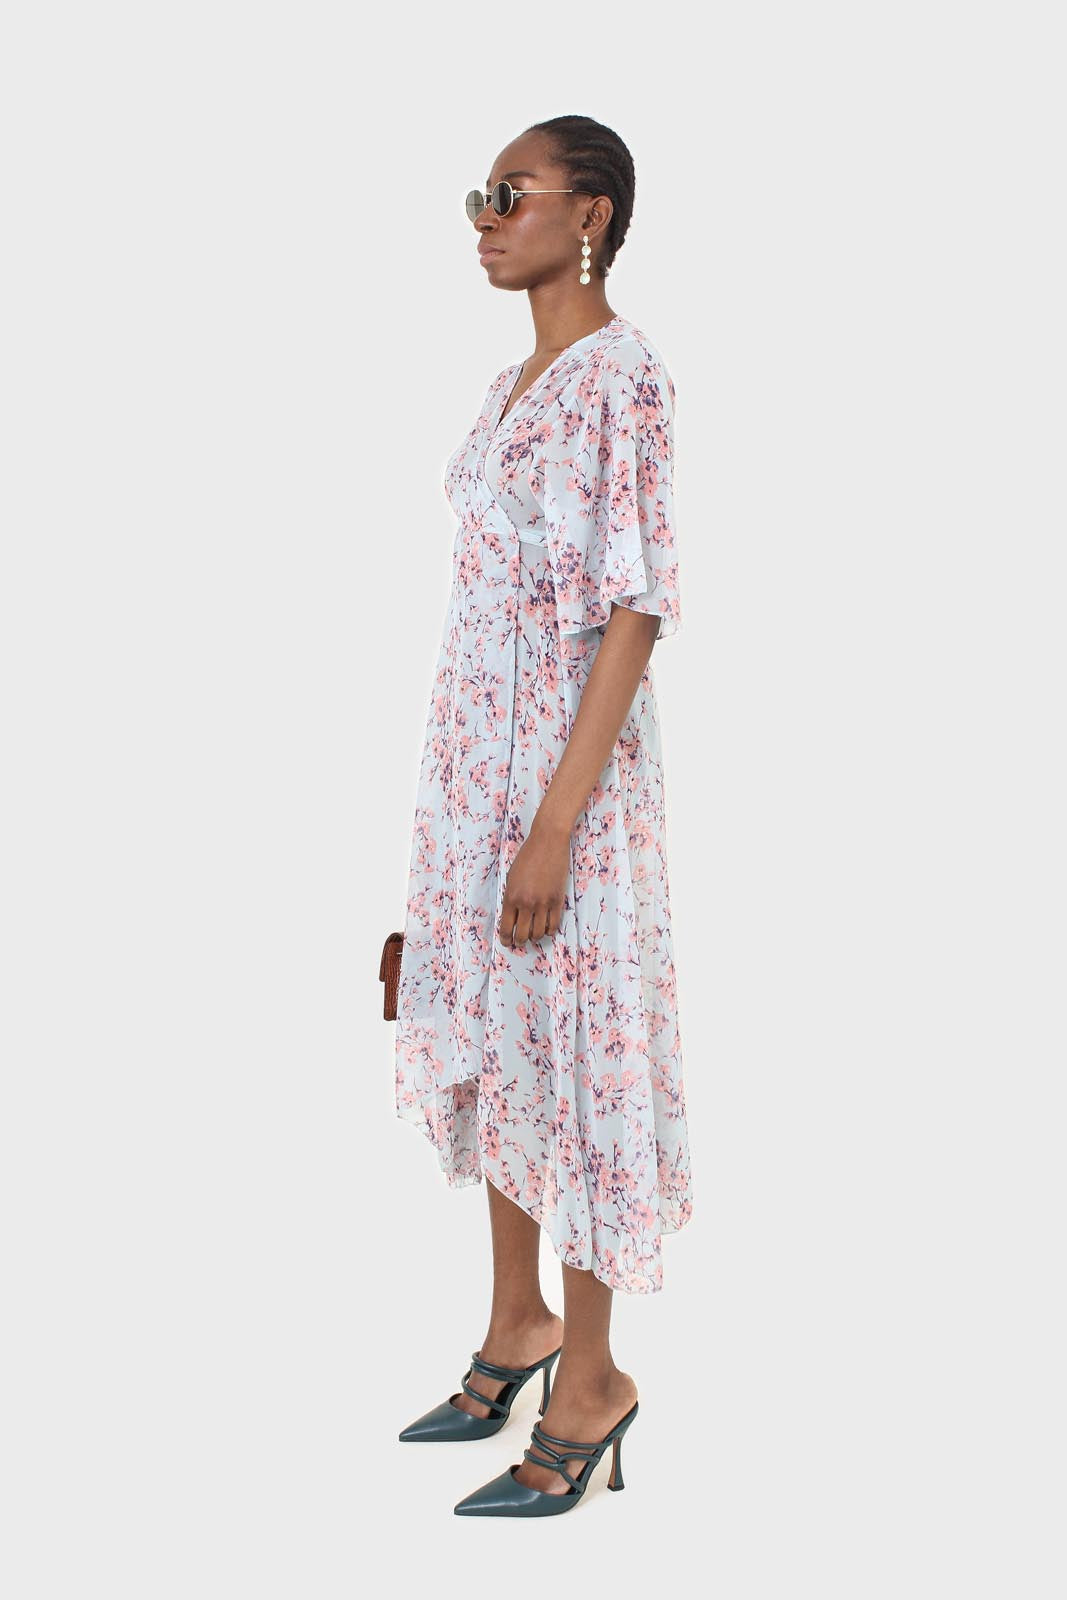 Blue and pink floral belted robe maxi dress2